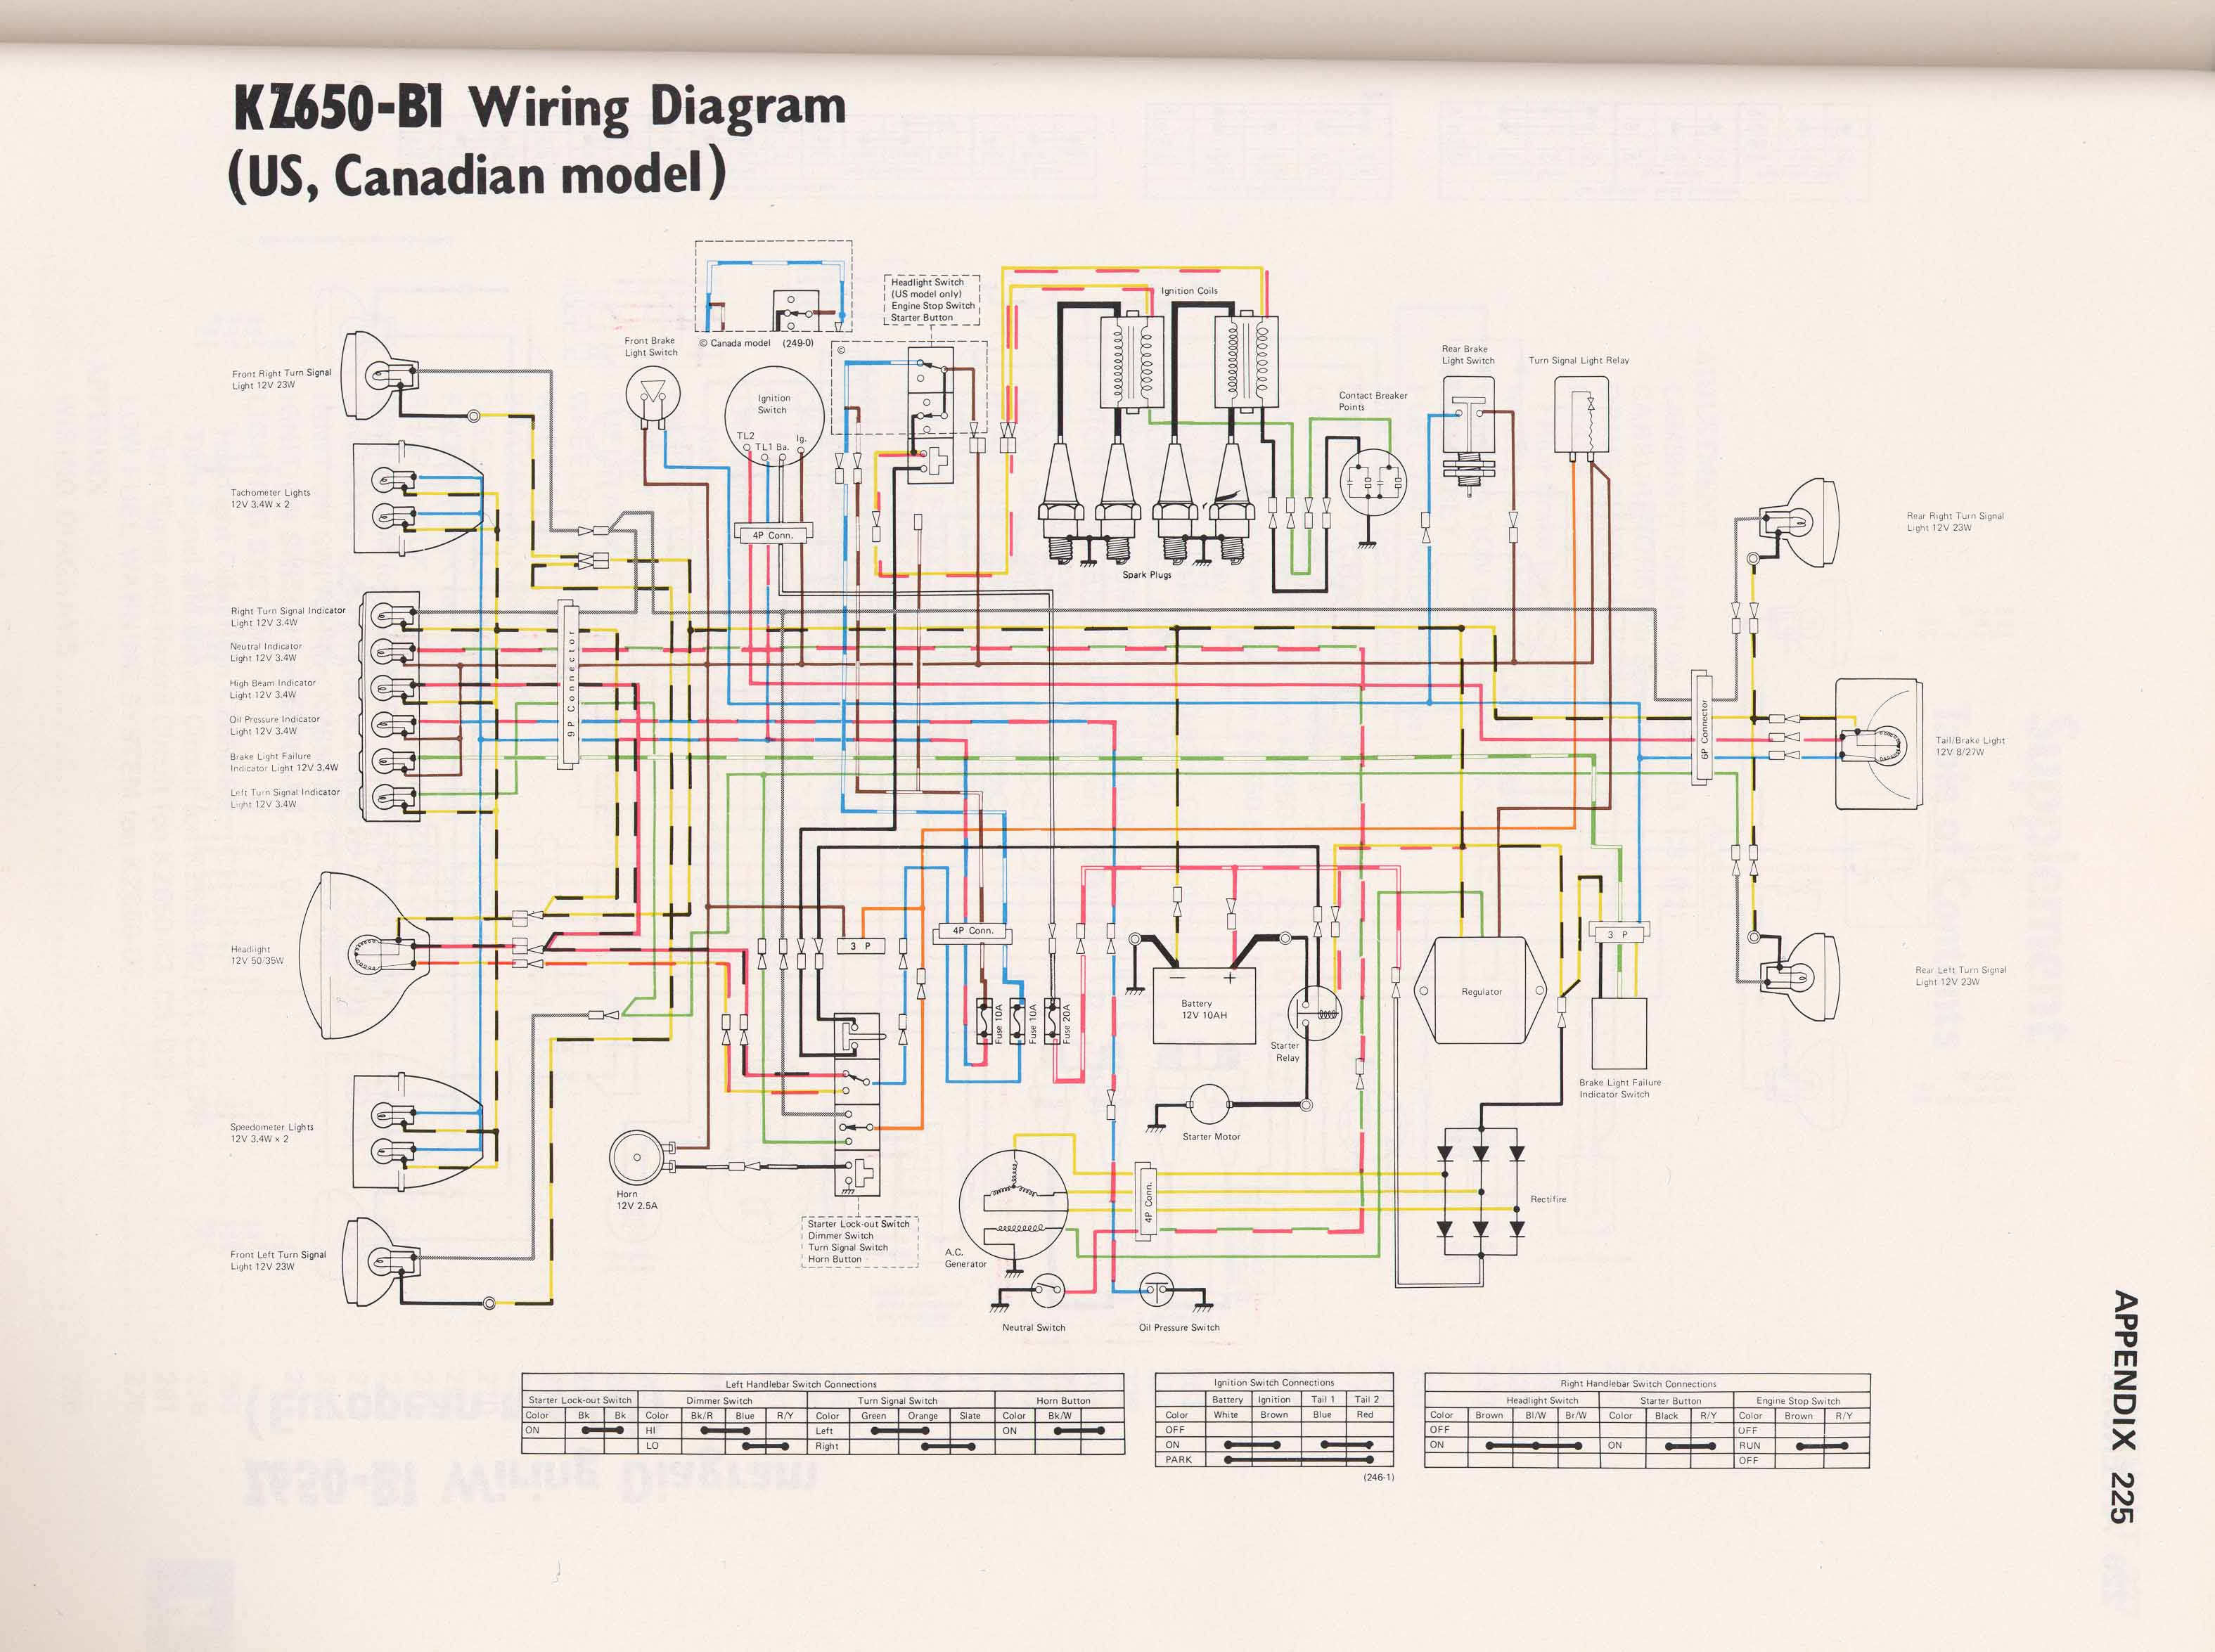 Wire Diagrams 1979 Kawasaki | Wiring Diagrams on xv920 wiring diagram, er6n wiring diagram, kz400 wiring diagram, fj1100 wiring diagram, vulcan 750 wiring diagram, z1000 wiring diagram, kawasaki wiring diagram, kz1000 wiring diagram, kz900 wiring diagram, kz650 wiring diagram, ke175 wiring diagram, zx600 wiring diagram, gs1000 wiring diagram, vulcan 1500 wiring diagram, zl1000 wiring diagram, ninja 250r wiring diagram, xj550 wiring diagram, kz200 wiring diagram, ex250 wiring diagram, xs850 wiring diagram,